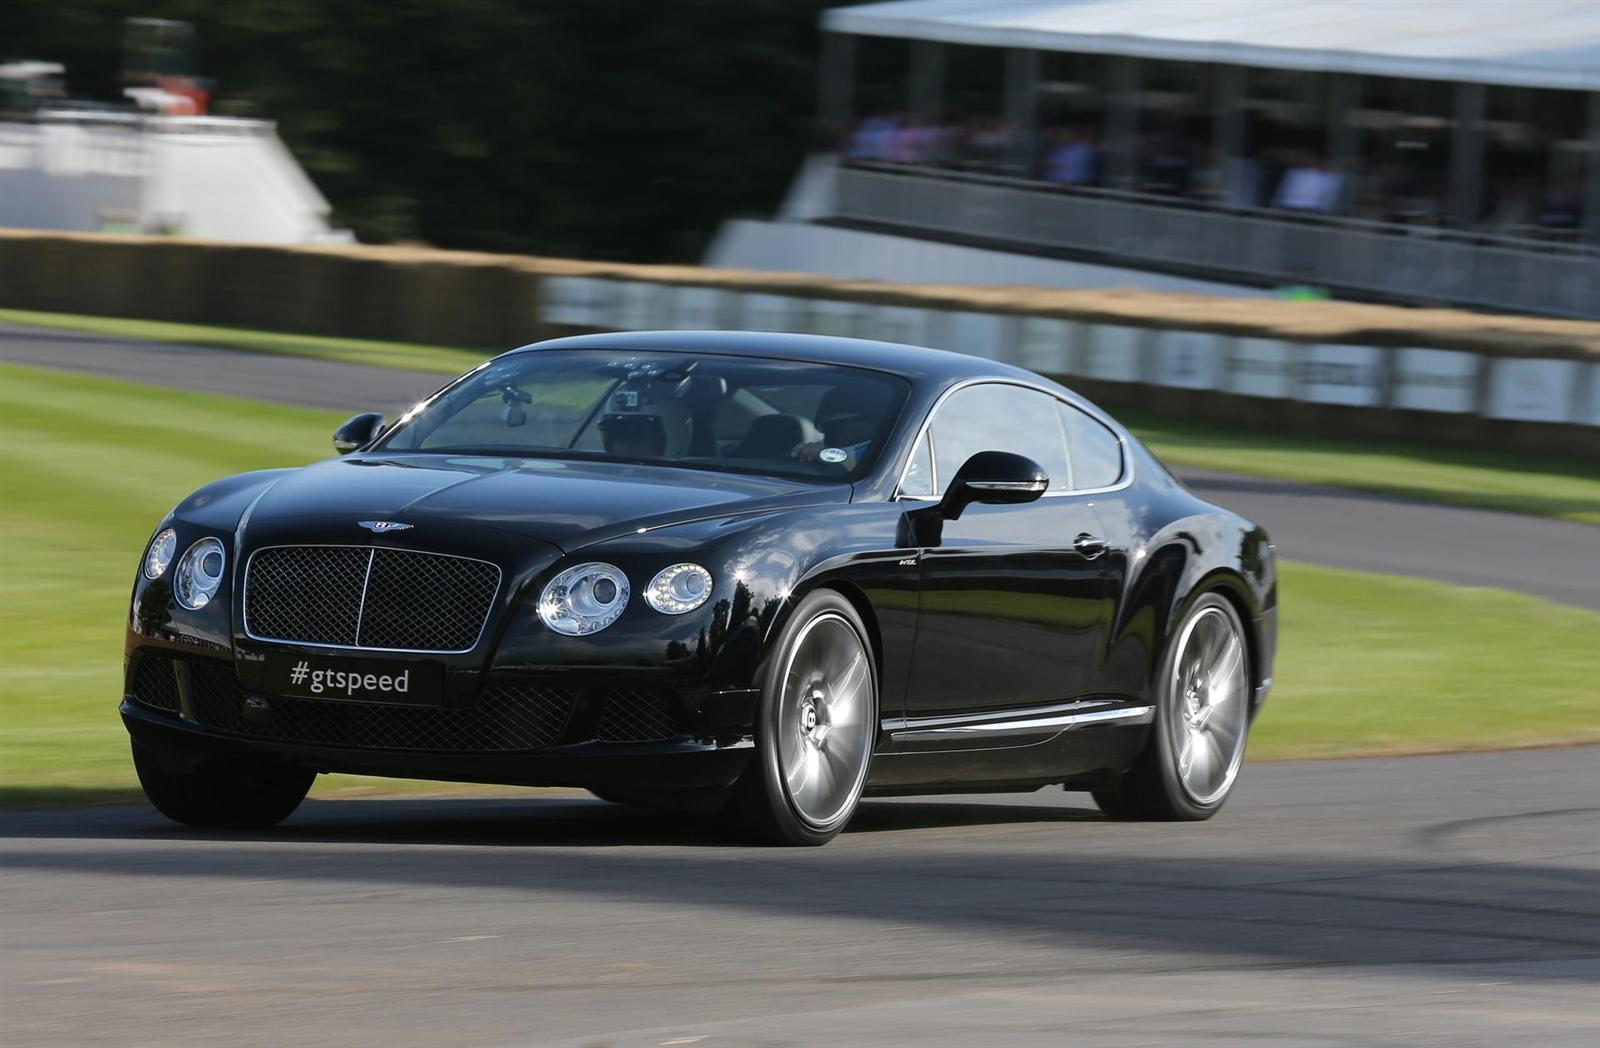 Bentley Continental Gt Speed #3